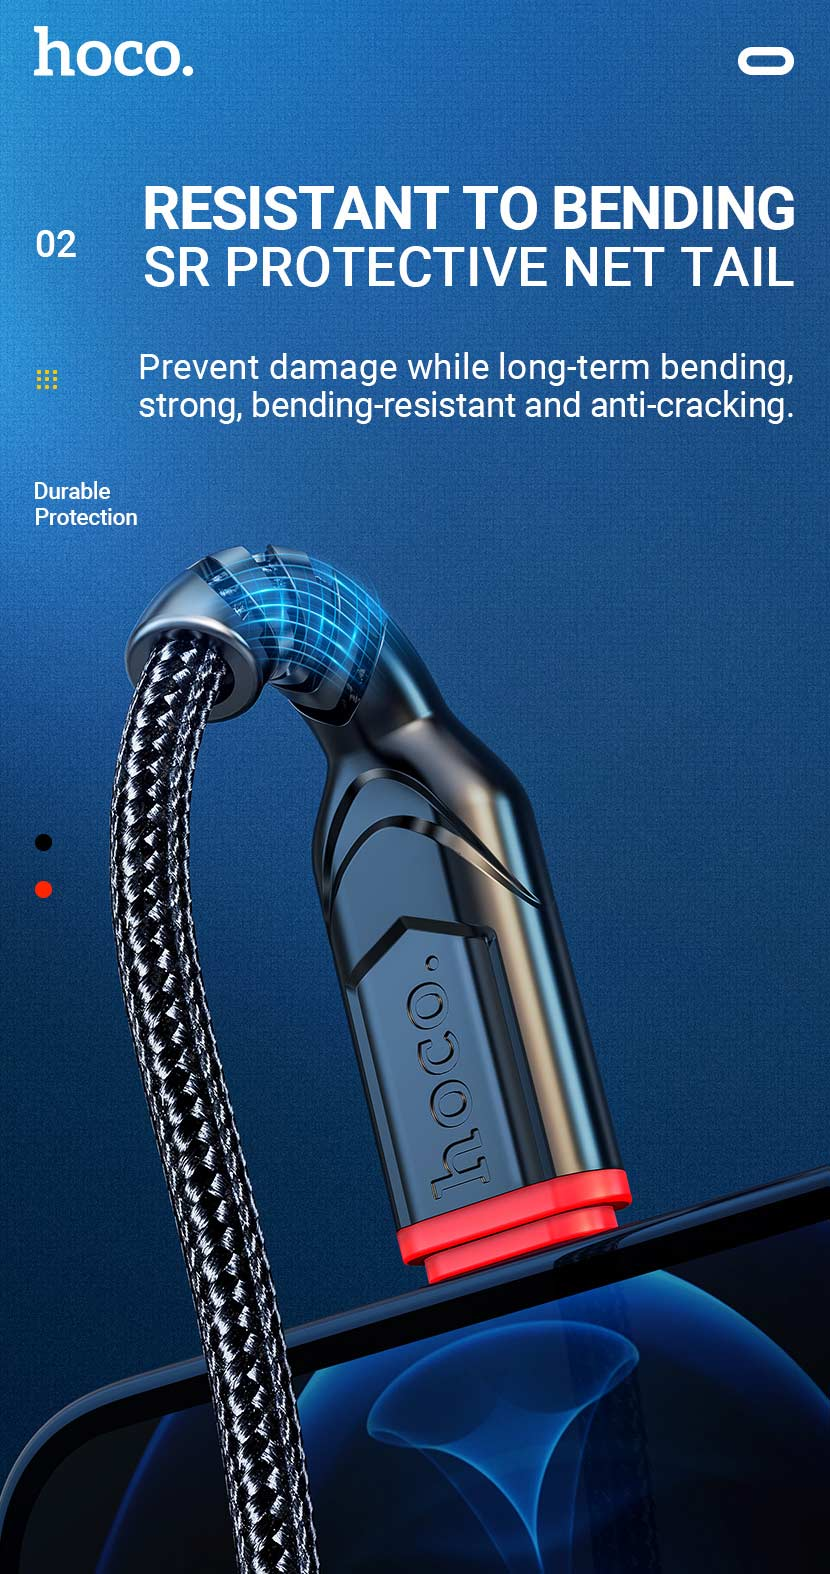 hoco news x59 victory charging data cable net tail en